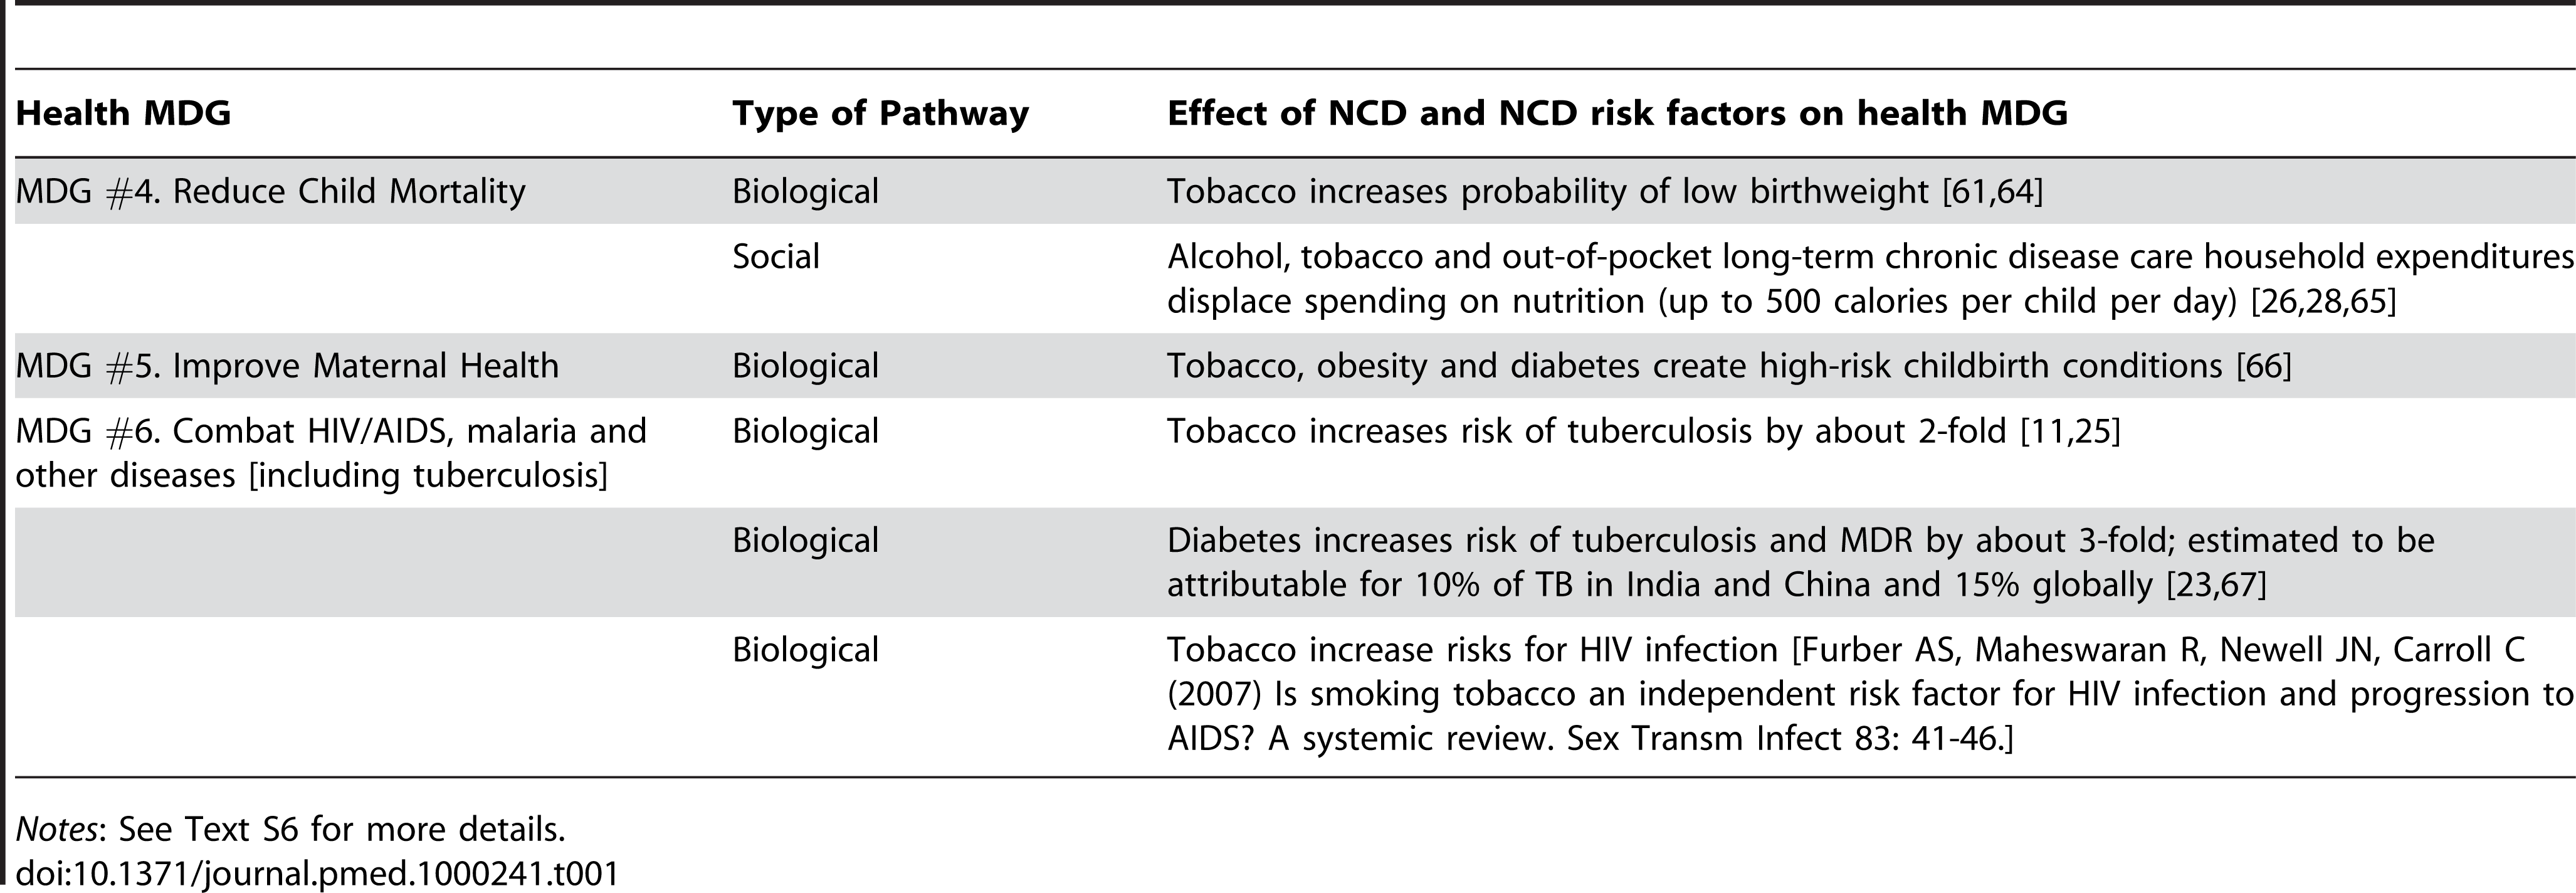 Selected Effects of NCDs and injuries and their risk factors on health MDGs.